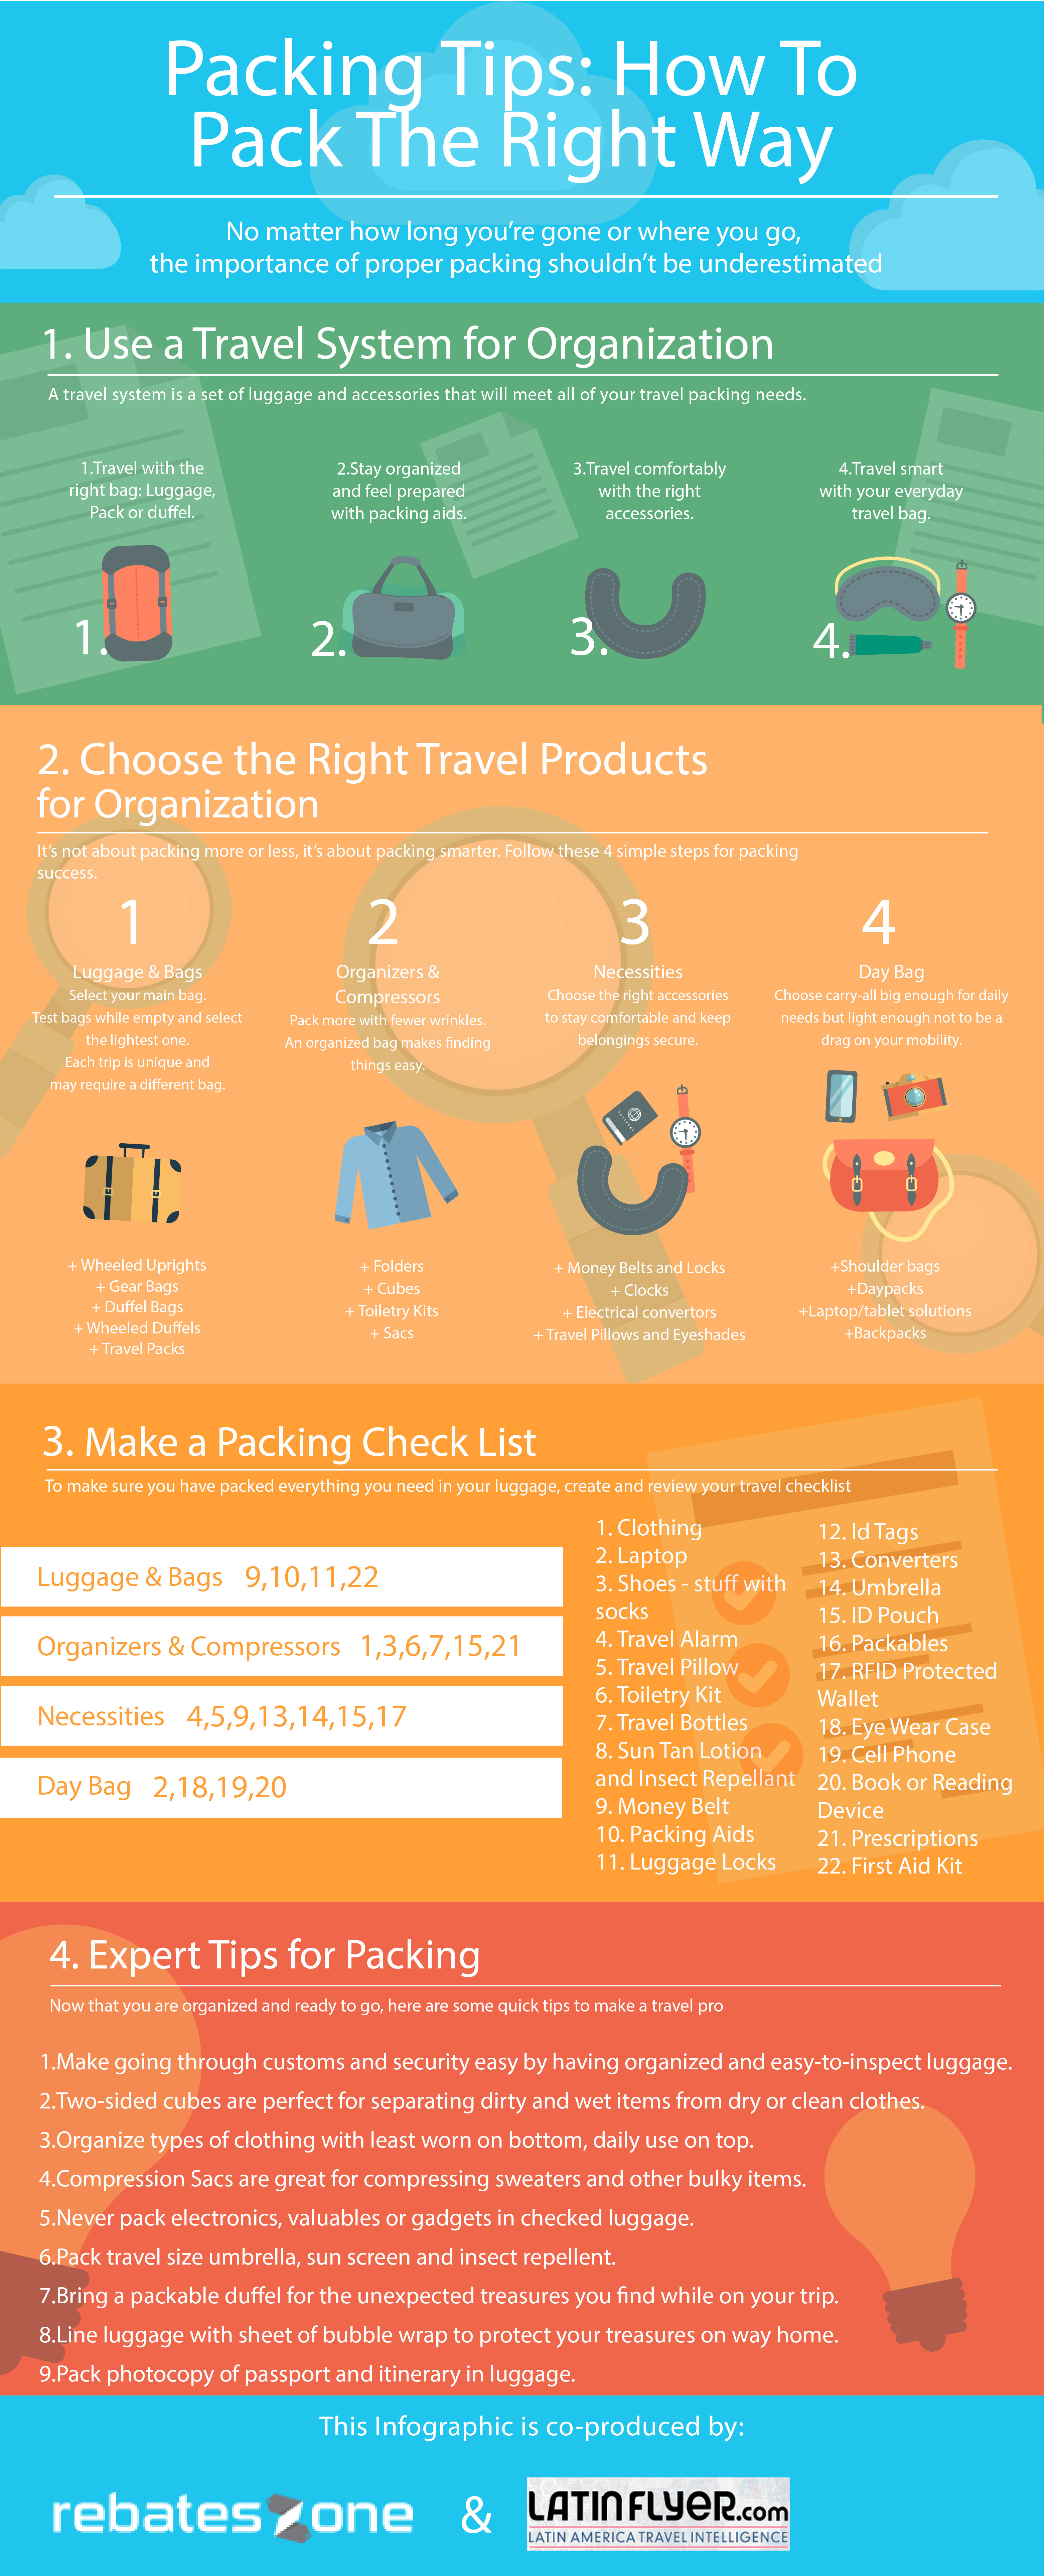 Packing tips coproduced by Rebateszone and LatinFlyer.com